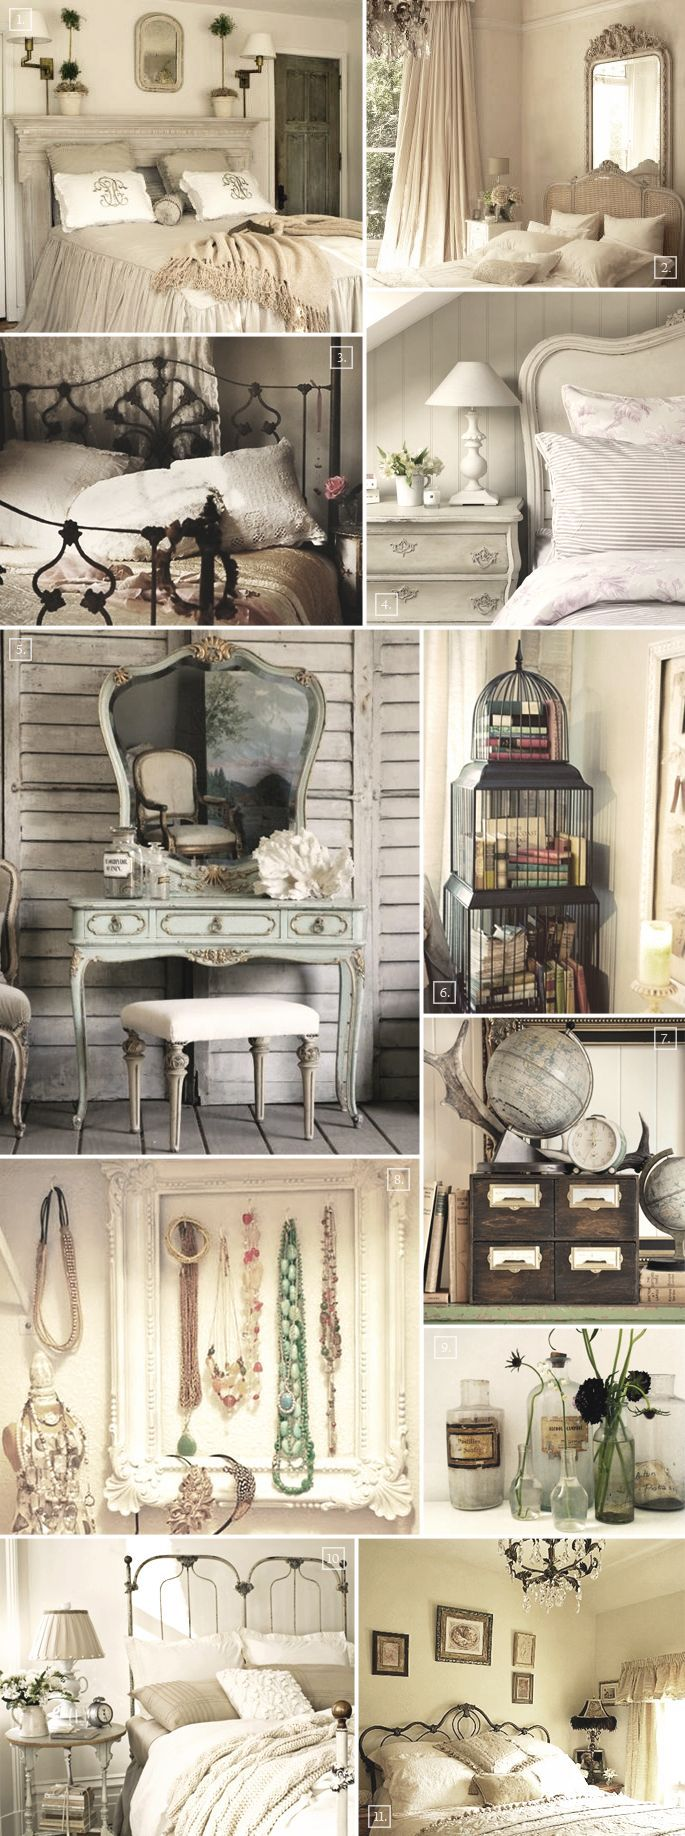 Vintage Bedroom Decor Accessories and Ideas | Home Tree Atlas. Very pretty ideas